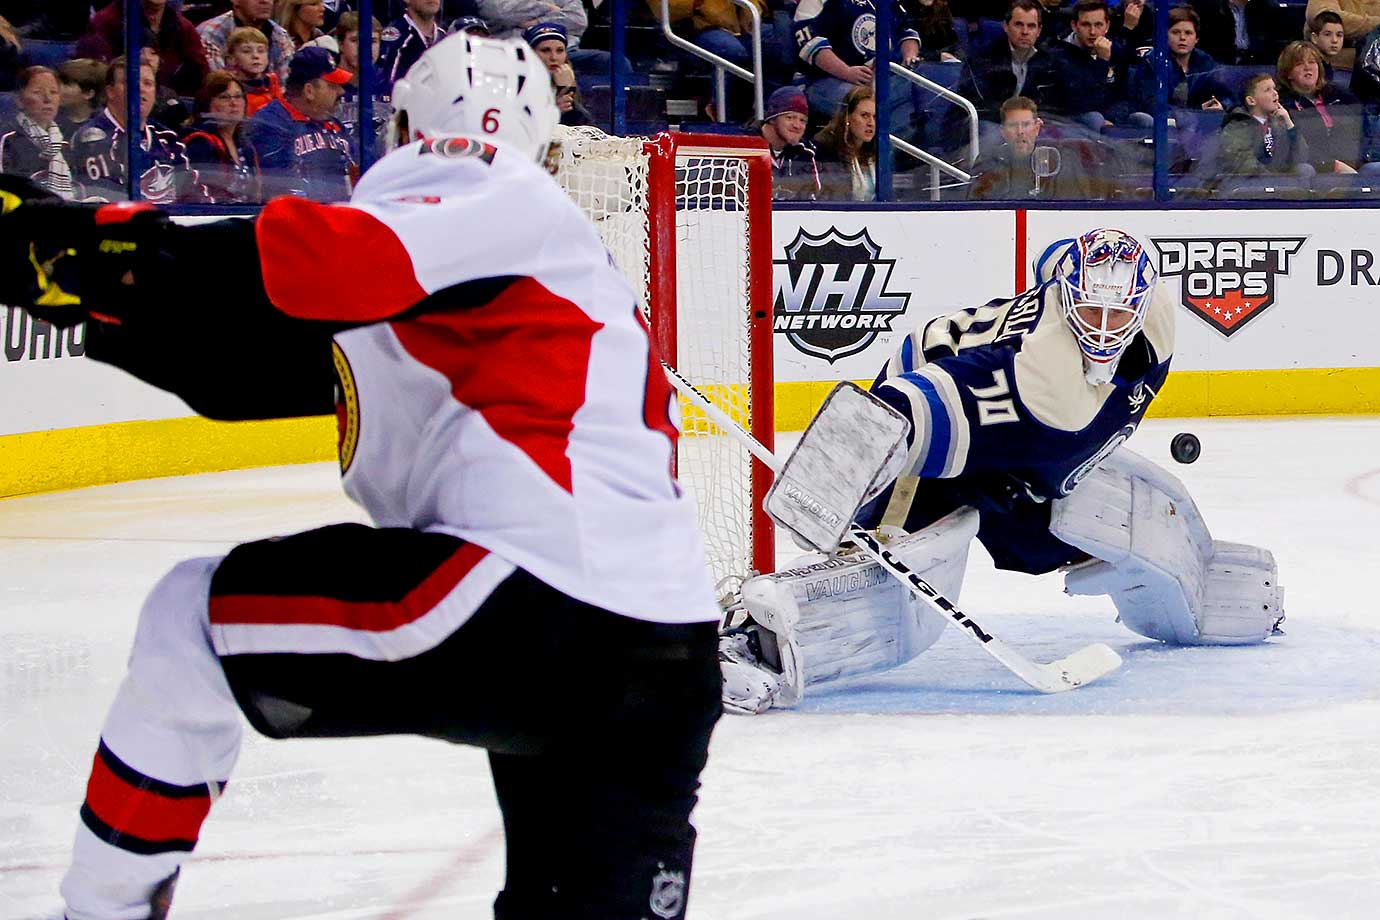 JJoonas Korpisalo of the Columbus Blue Jackets blocks a shot from Bobby Ryan of the Ottawa Senators.